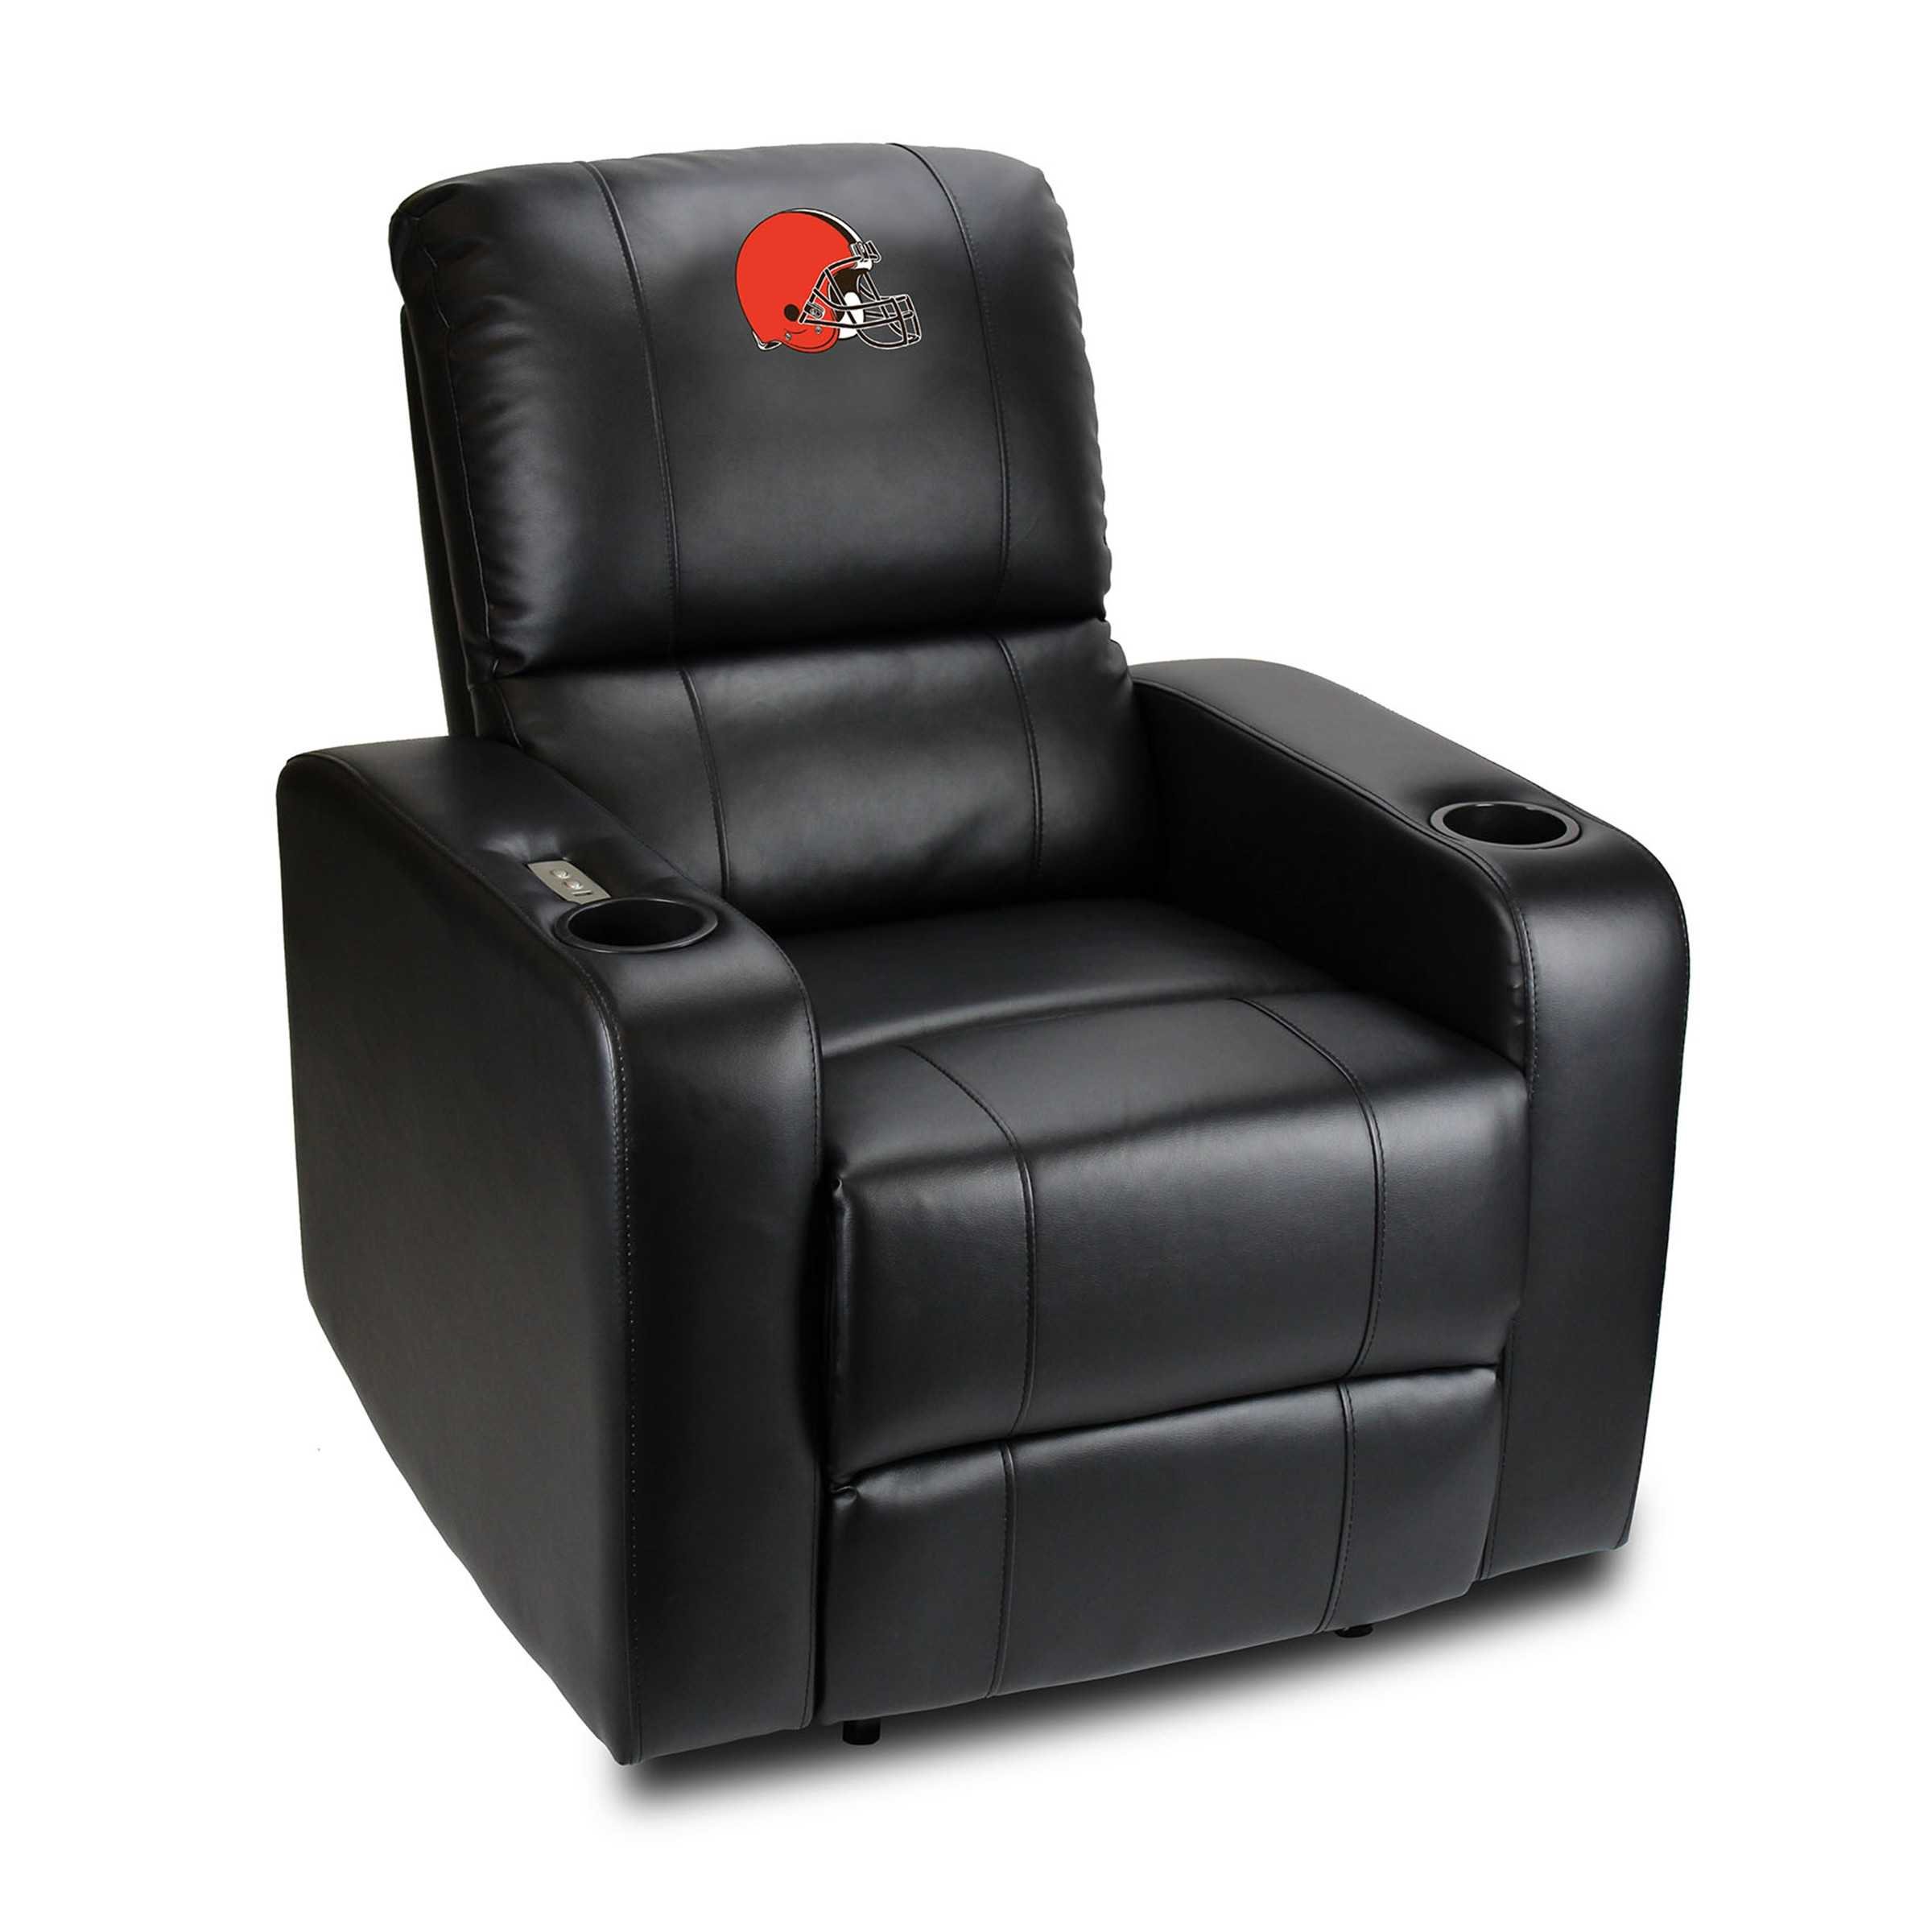 CLEVELAND BROWNS POWER THEATER RECLINER